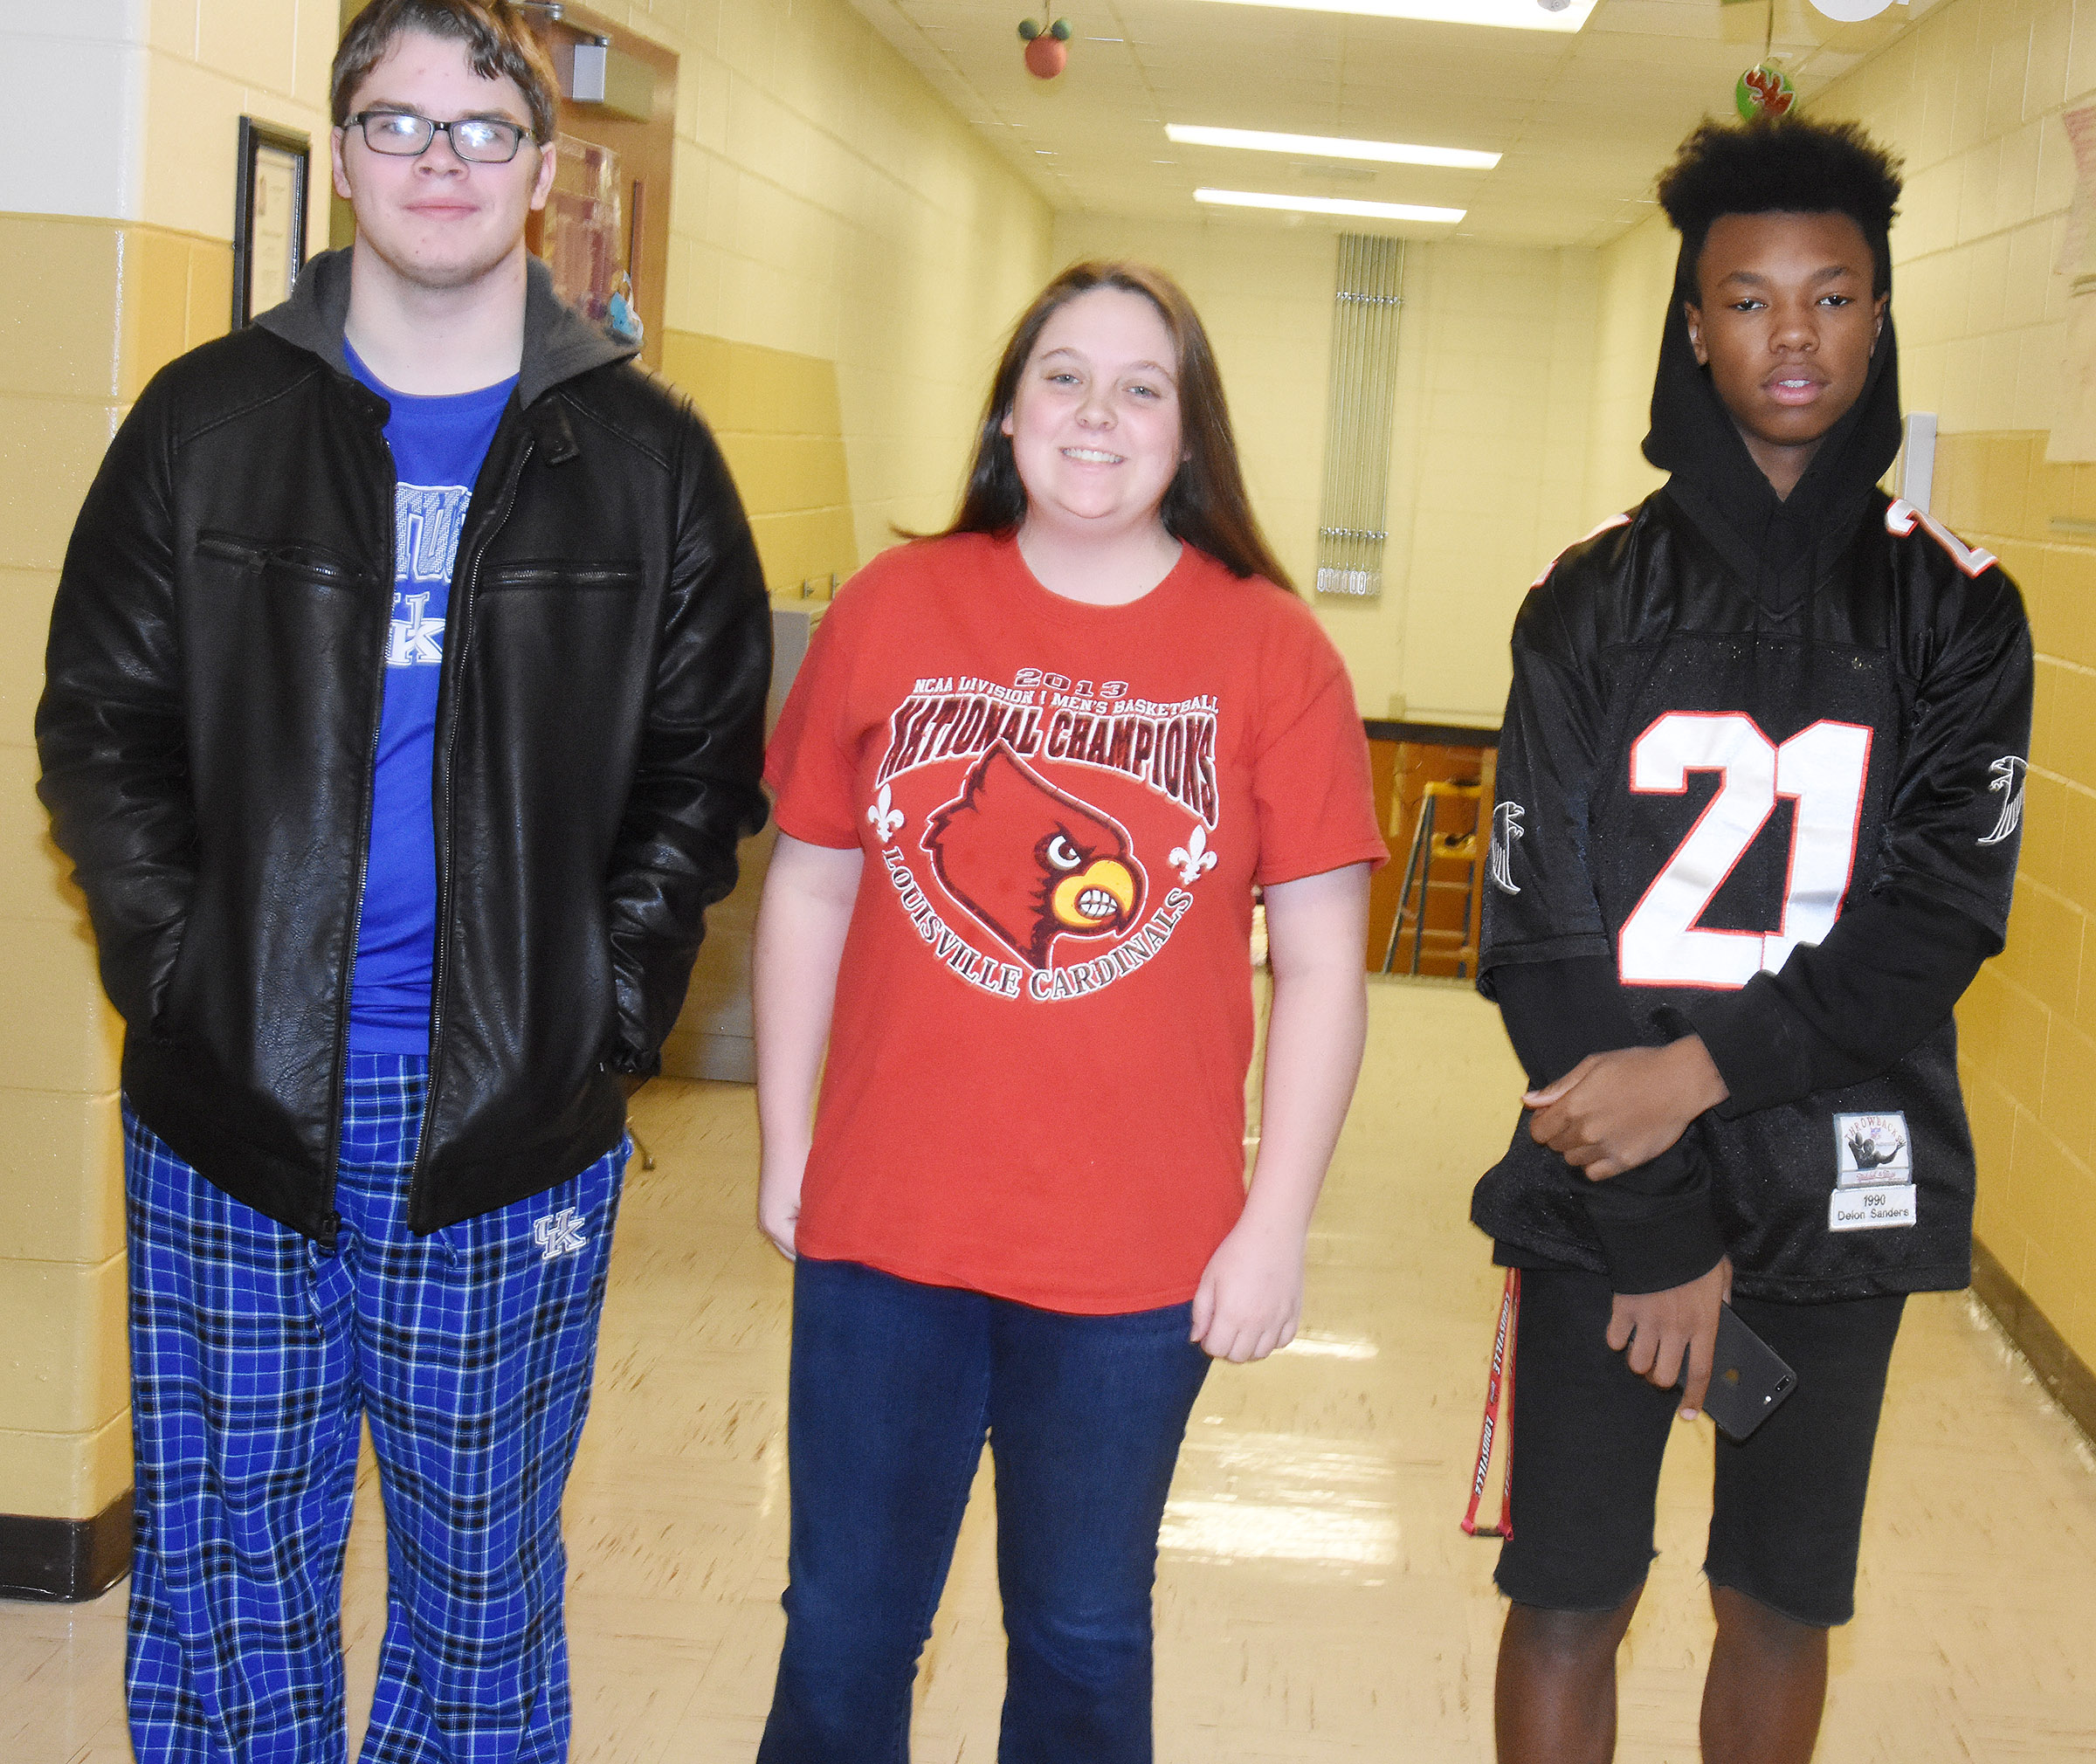 CHS students dress for Support Your Team Day.